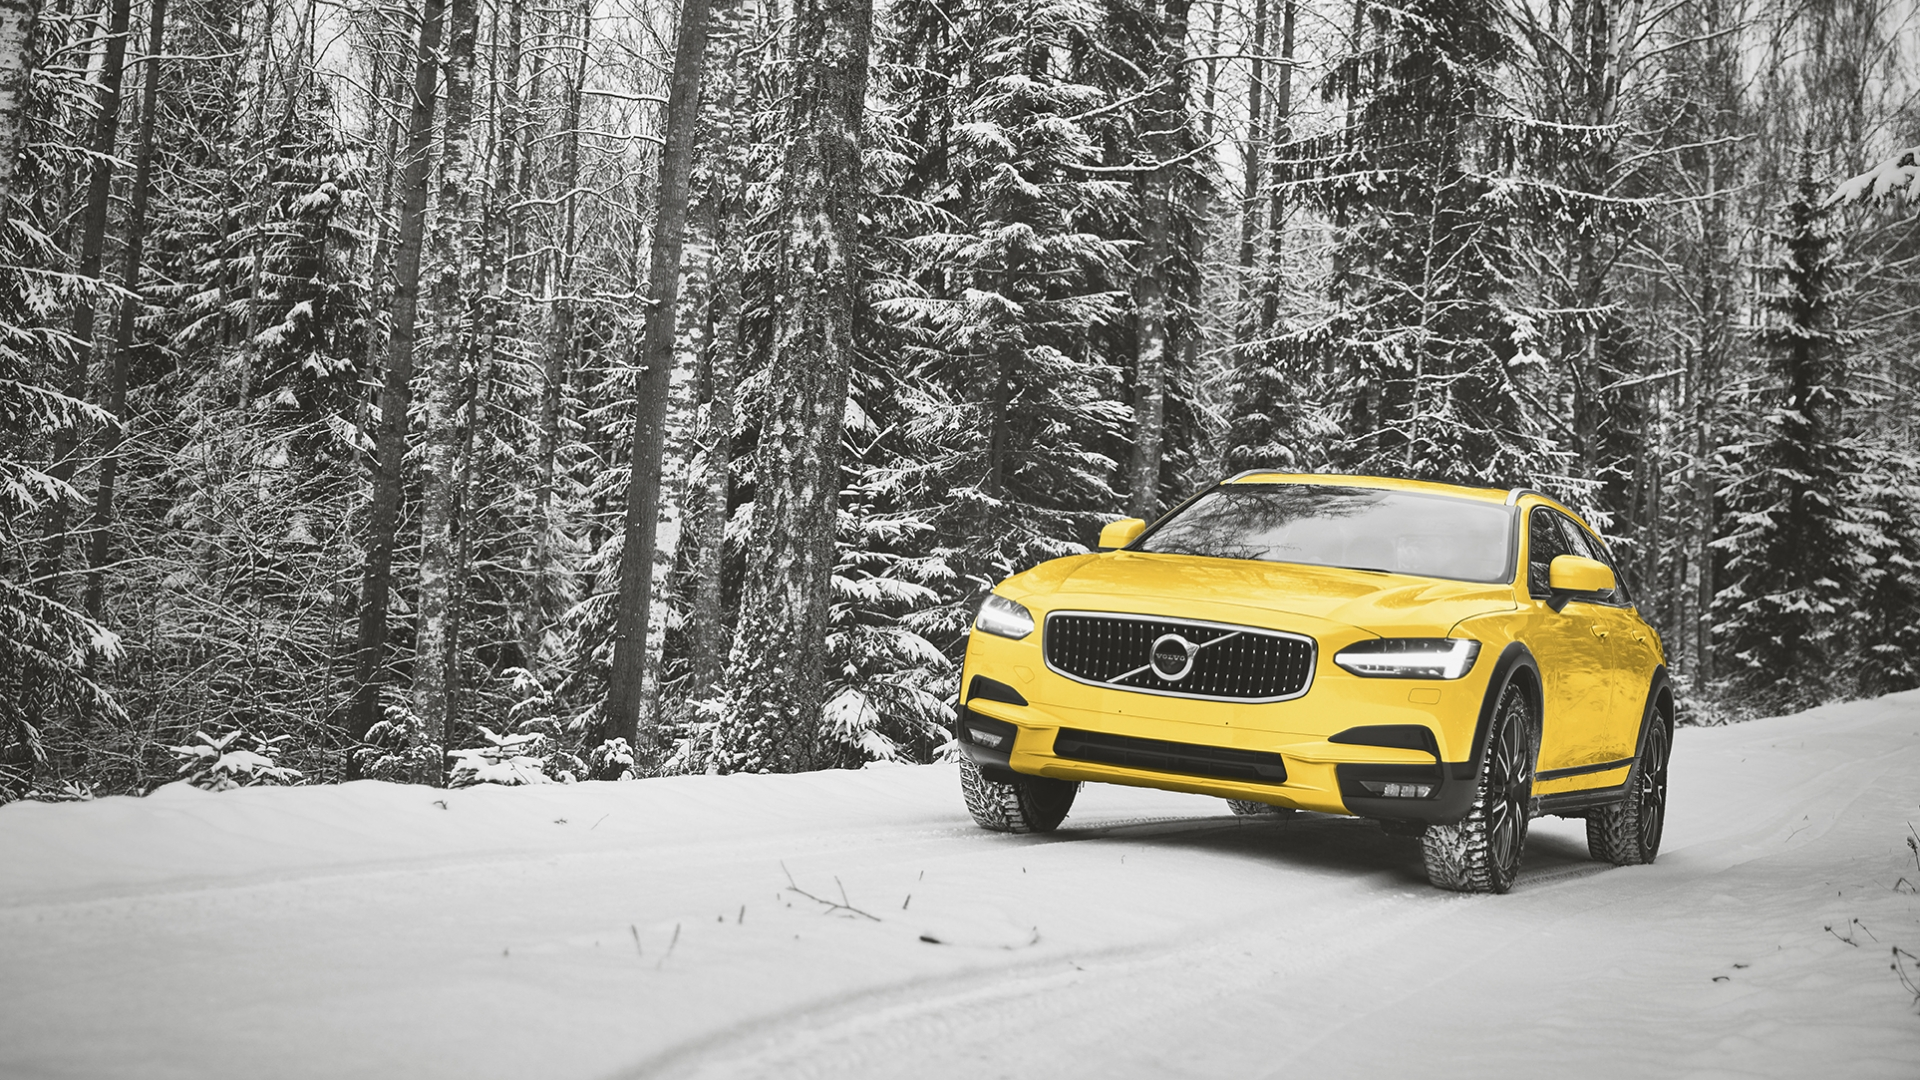 Yellow car on snowy winter roads